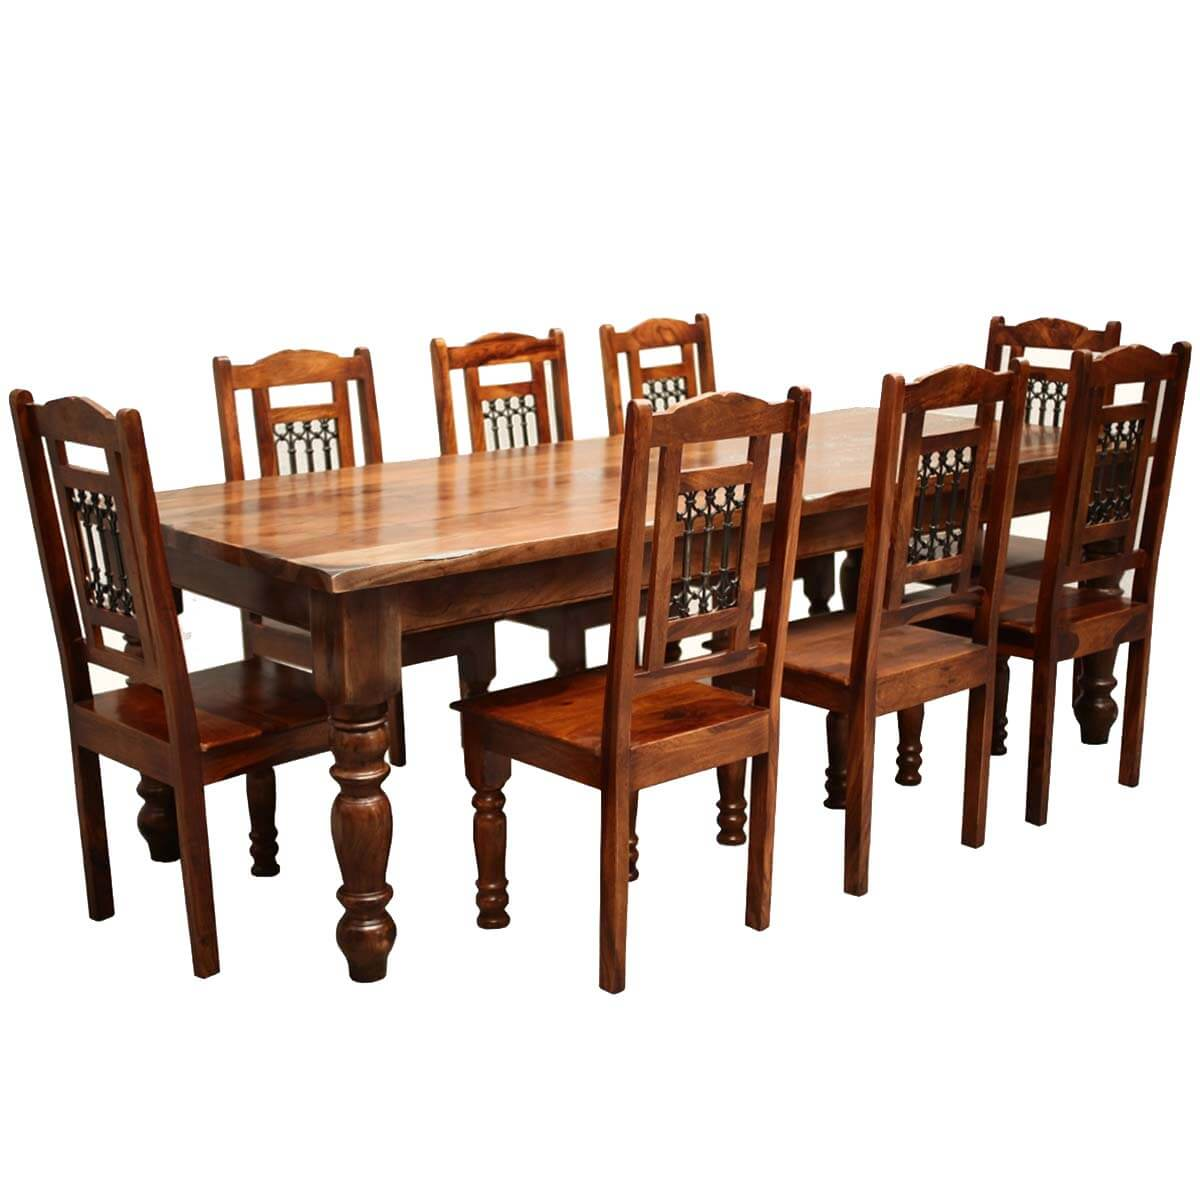 Rustic Furniture Solid Wood Large Dining Table amp 8 Chair Set : 4388 from www.sierralivingconcepts.com size 1200 x 1200 jpeg 116kB